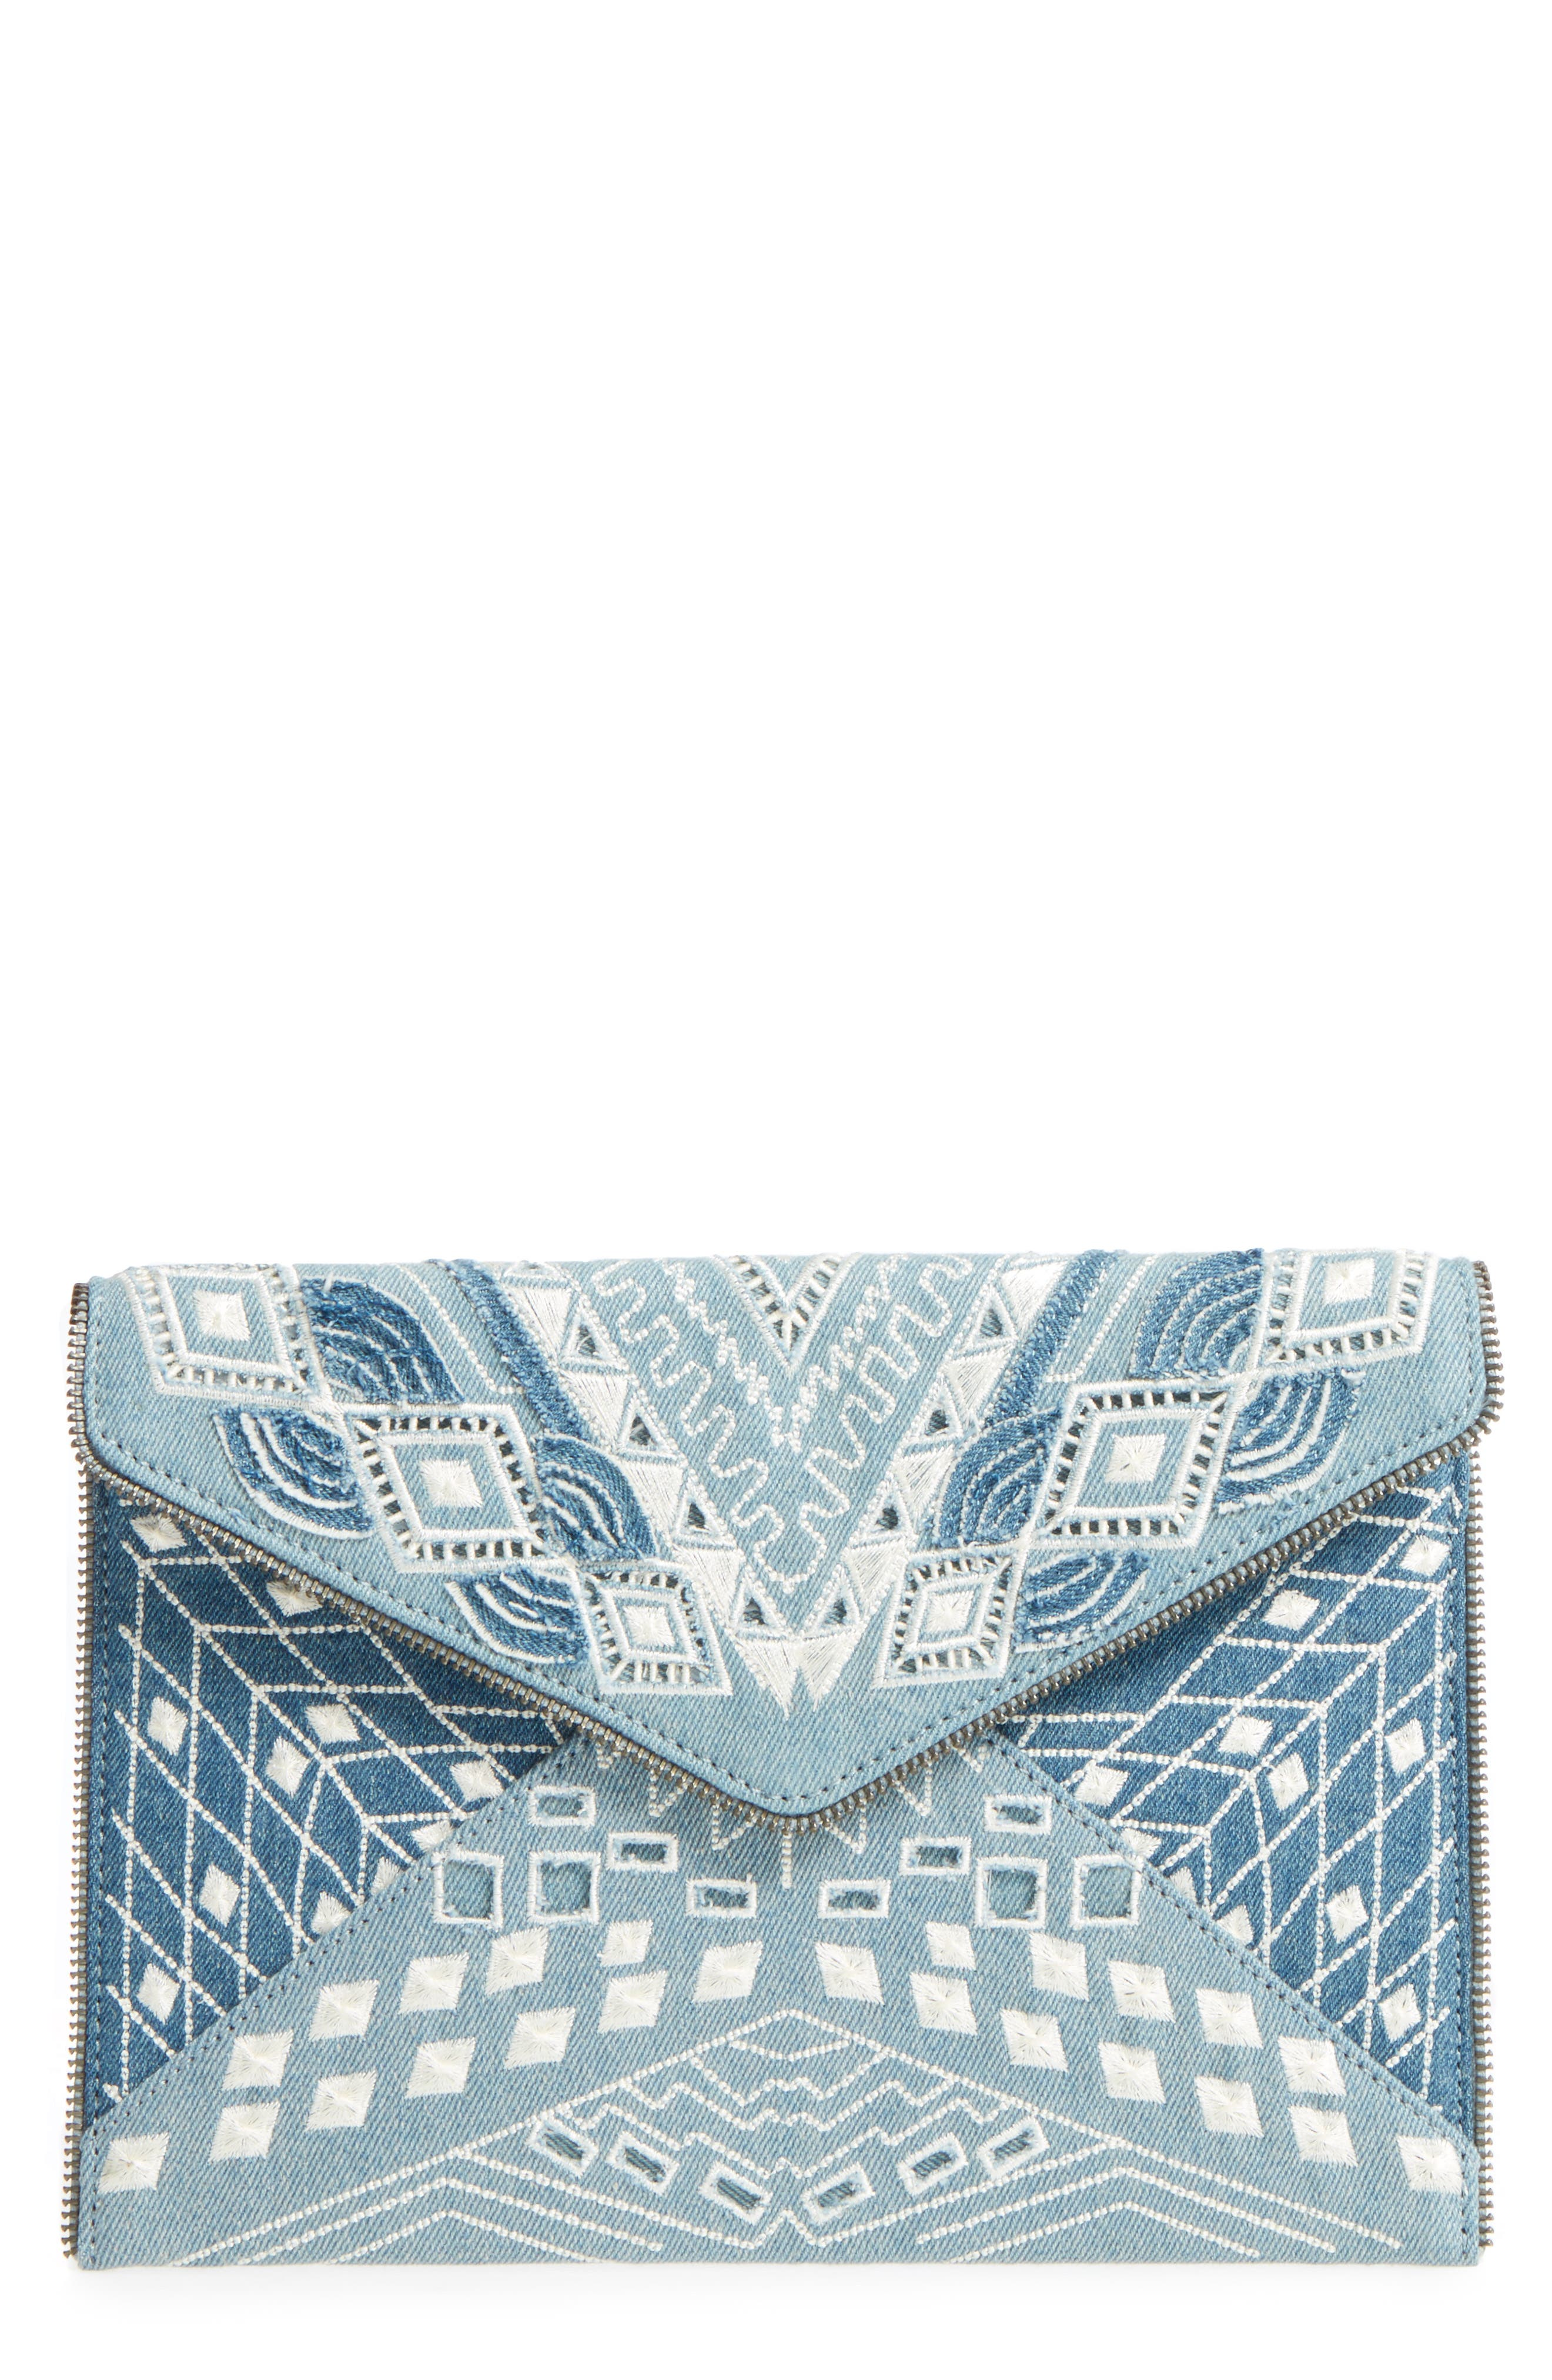 Main Image - Rebecca Minkoff Leo Embroidered Denim Clutch